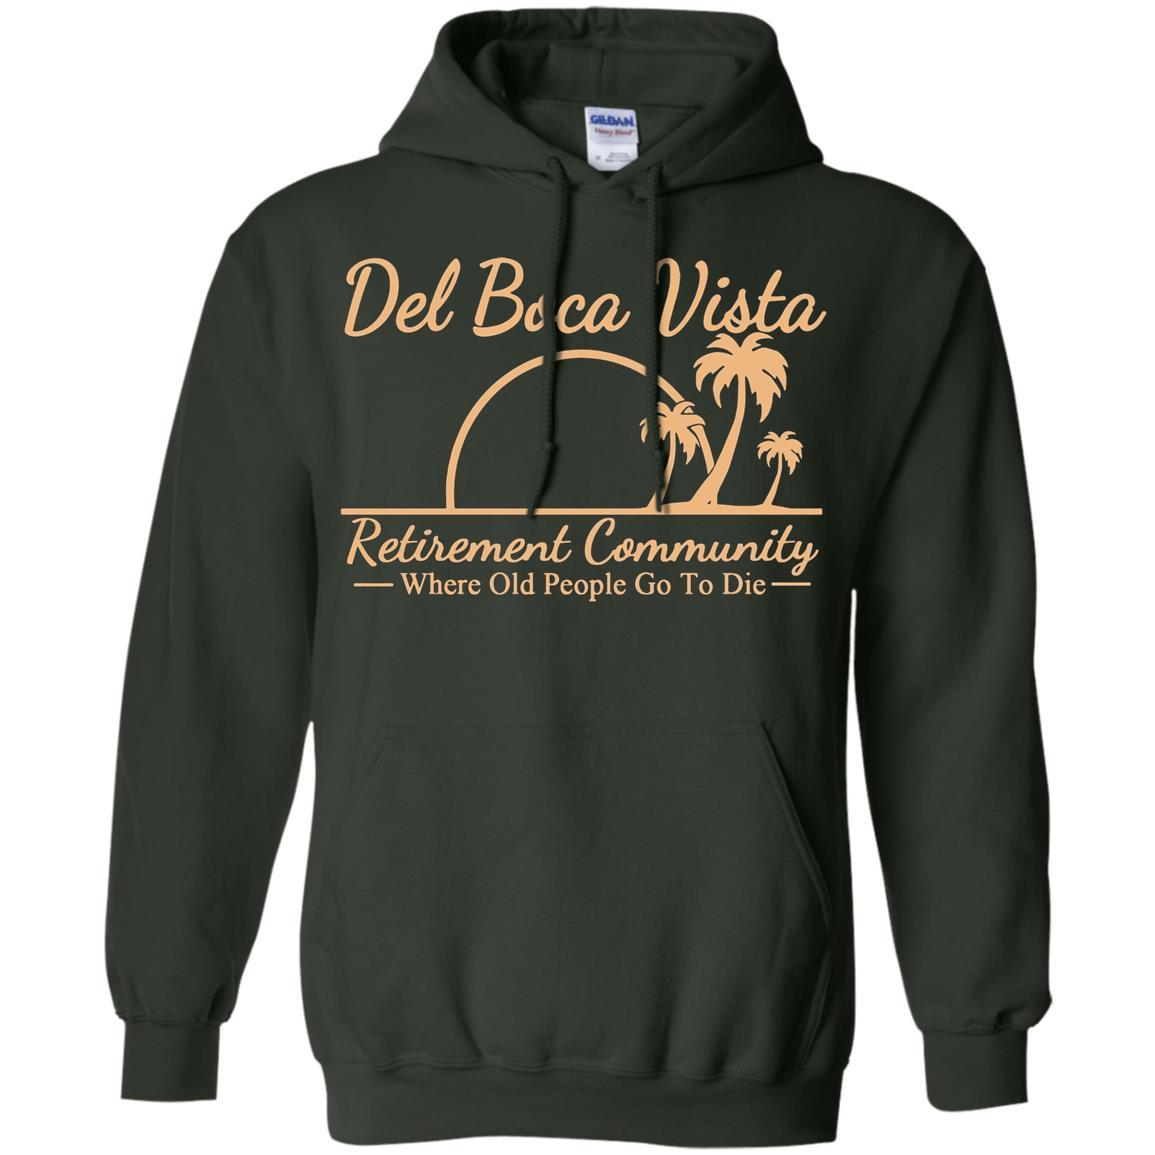 Del Boca Vista - Where old people go to die - Pullover Hoodie Forest Green / 5XL